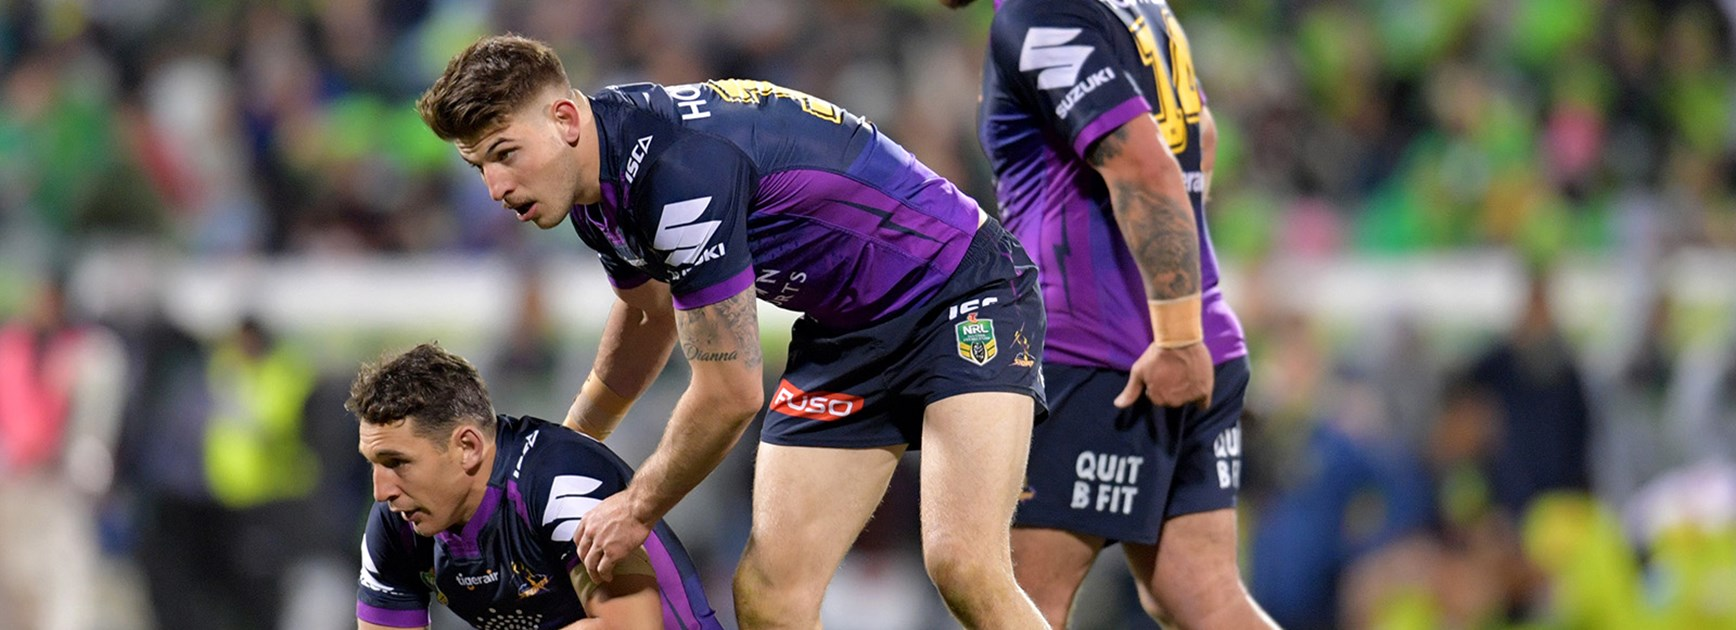 Smith and Slater in doubt: Cronk